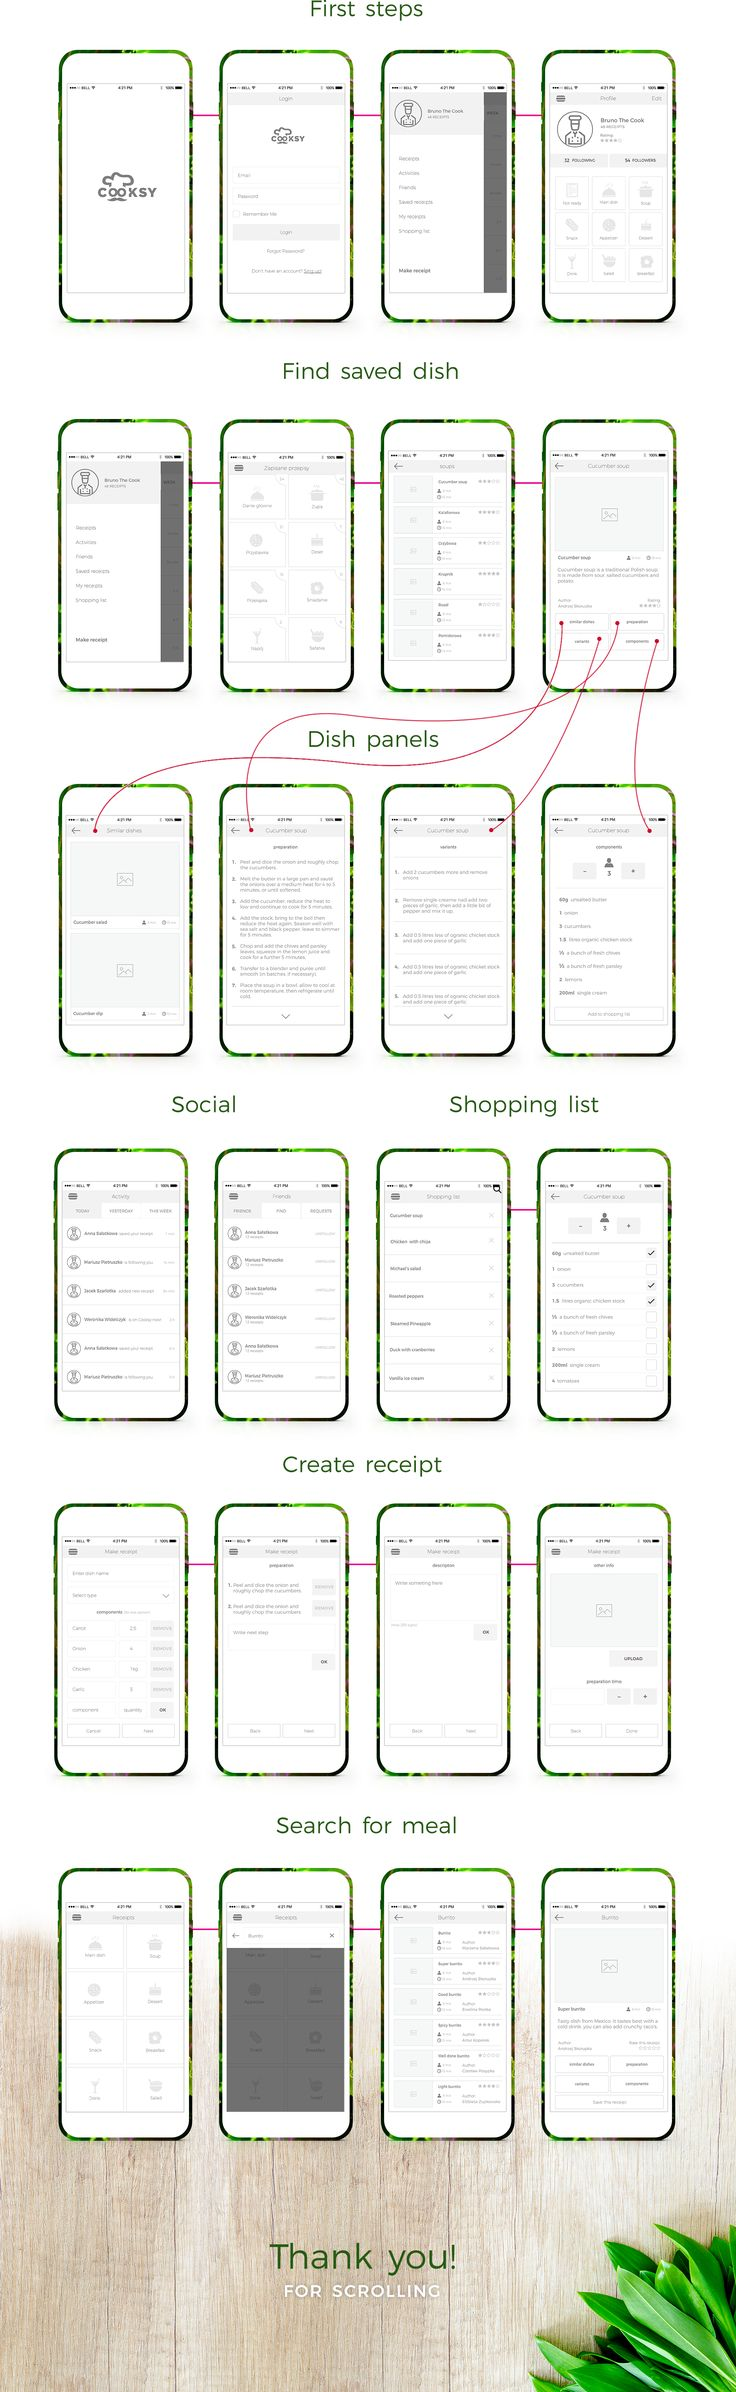 COOKSY - Mobile App Wireframe iOS UX on Behance